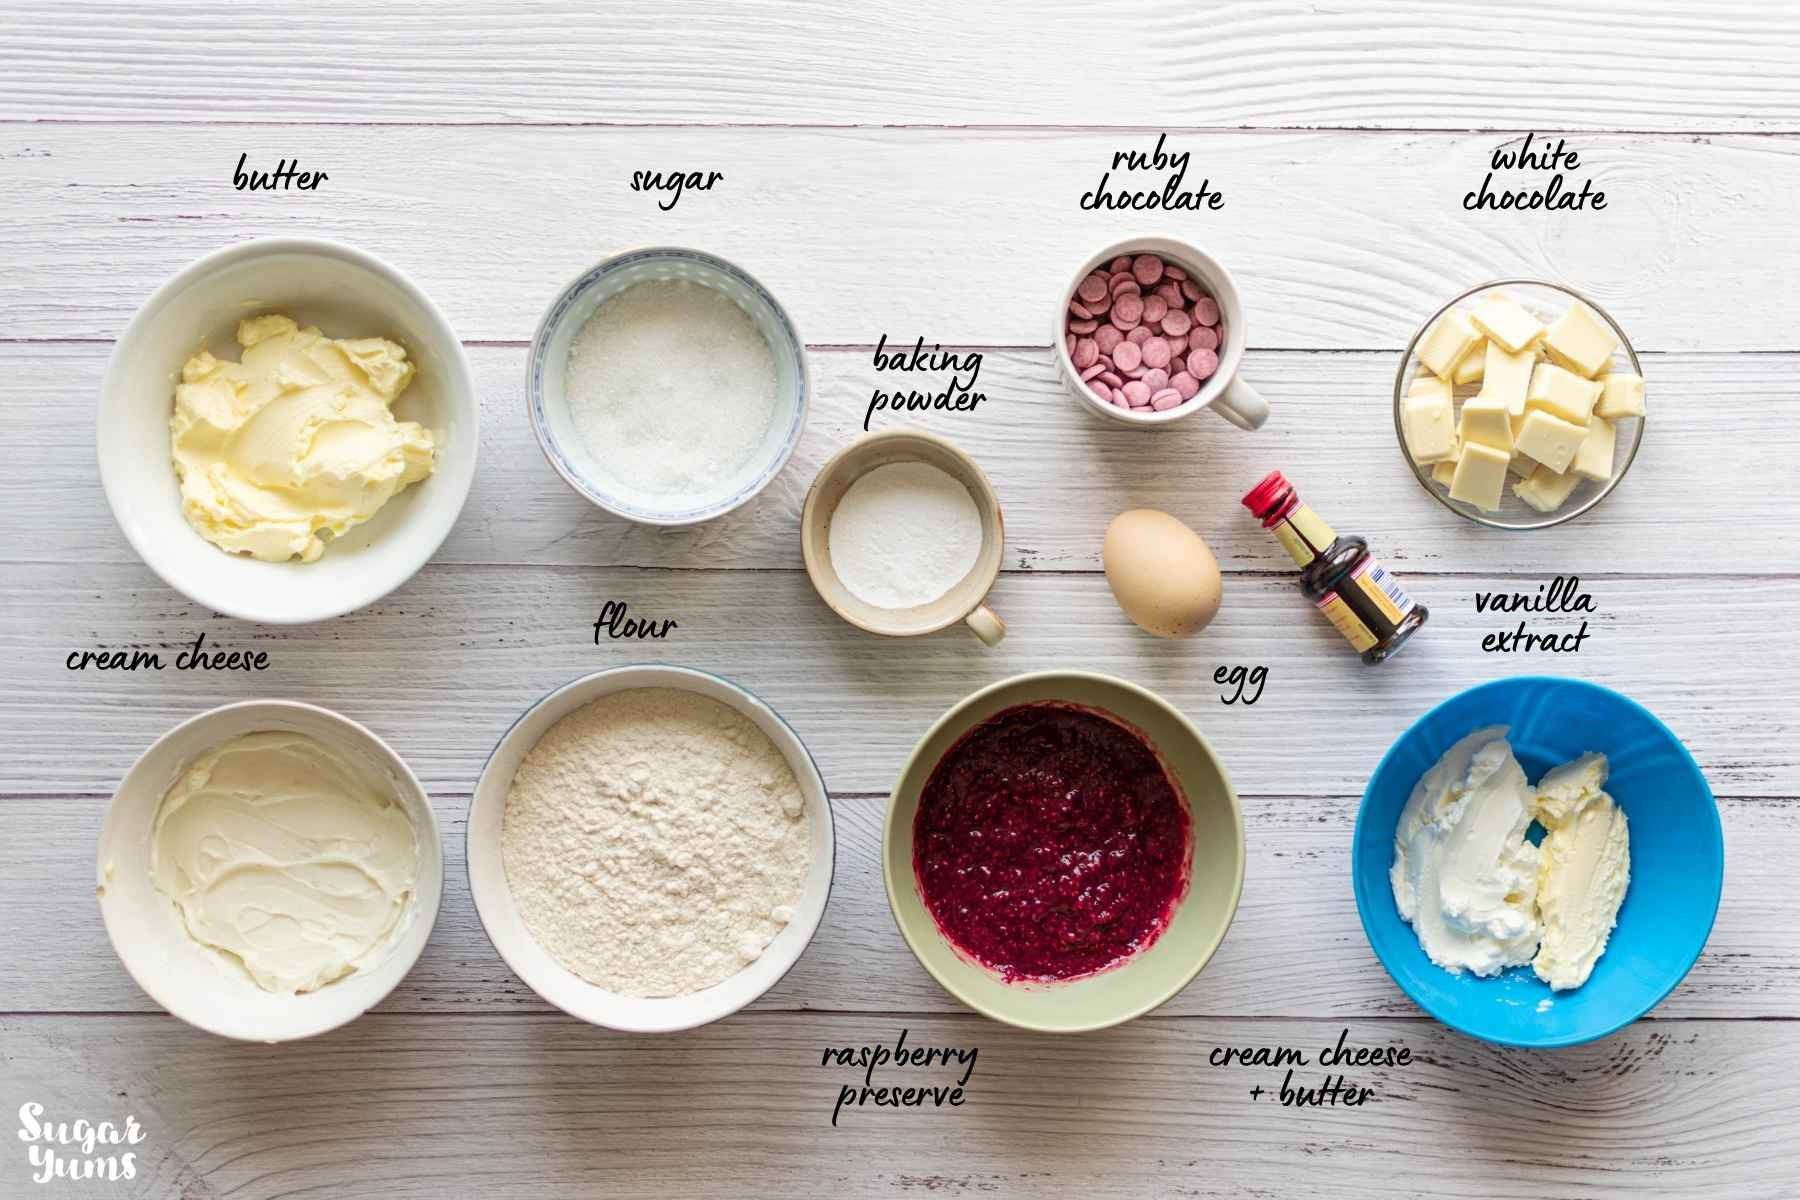 Flatlay image showing ingredients used in recipe